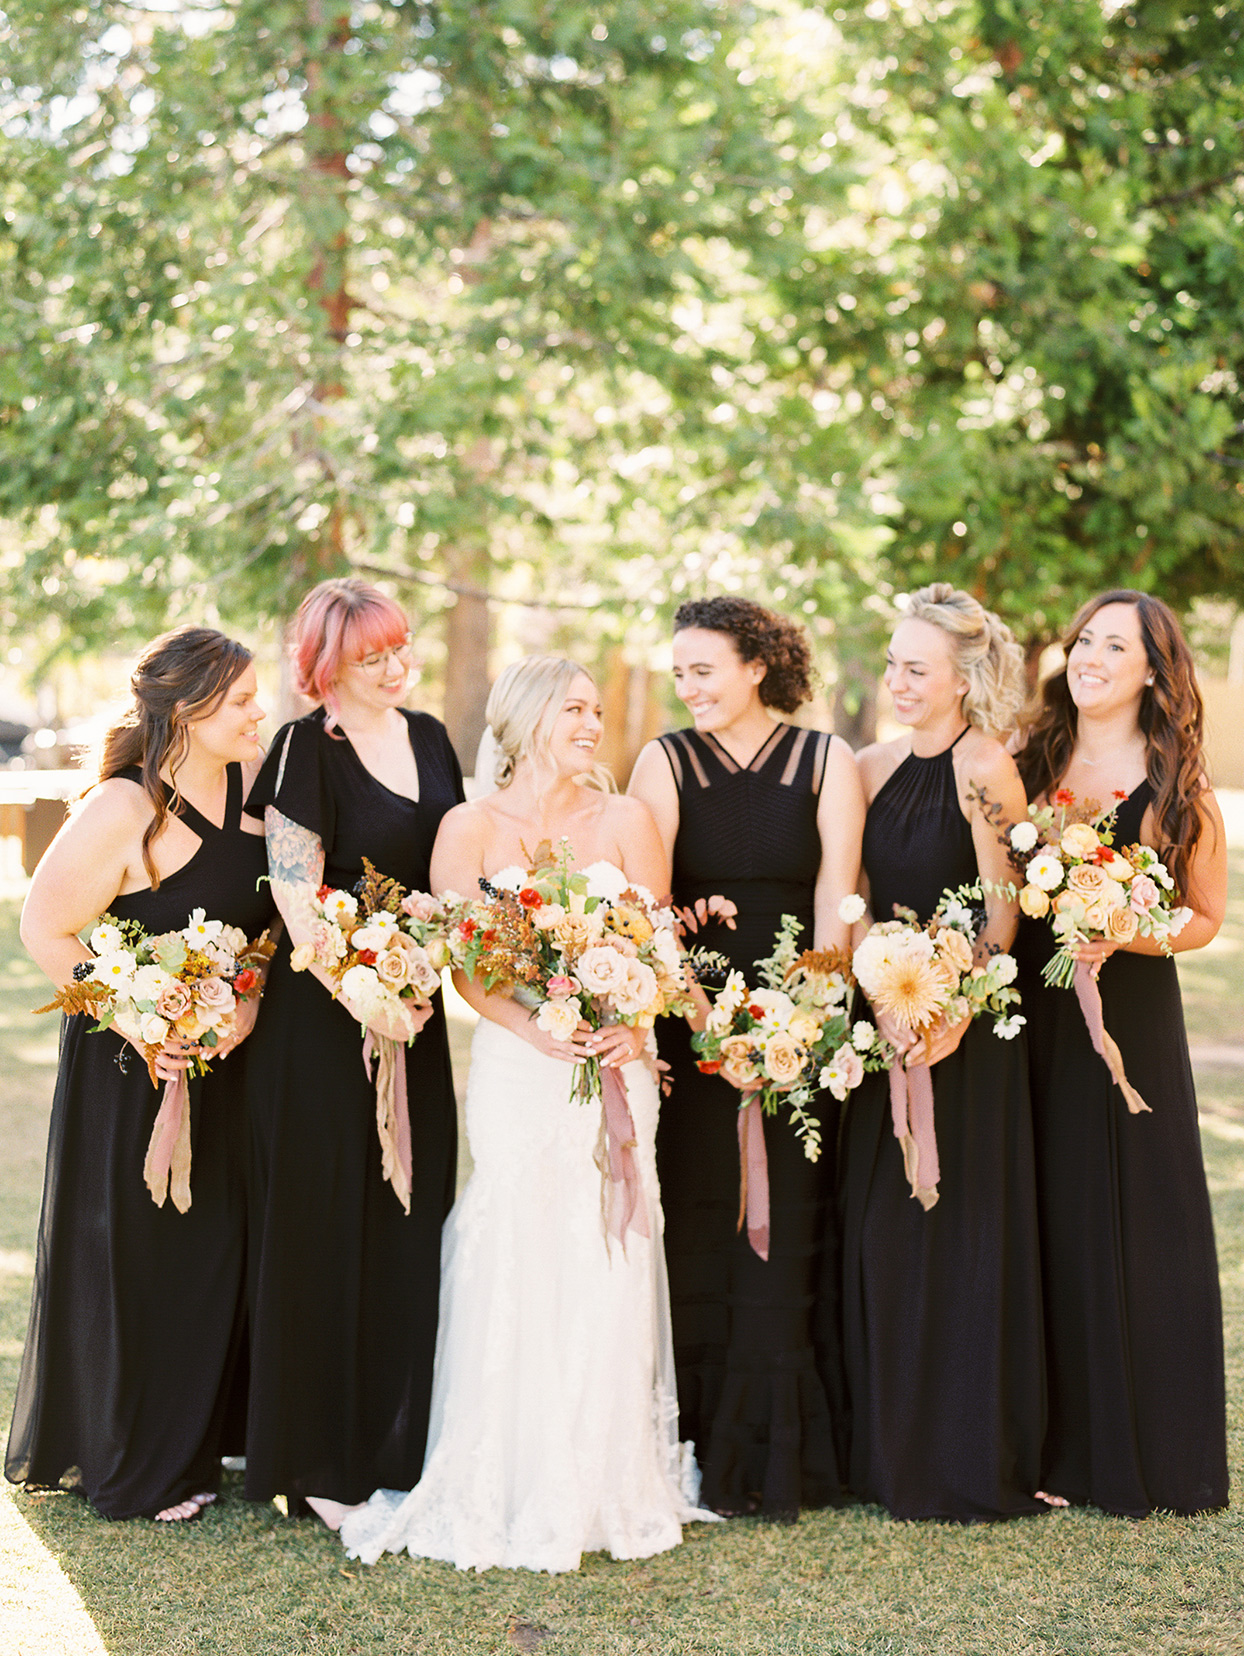 alexandra david wedding bride and maids in black